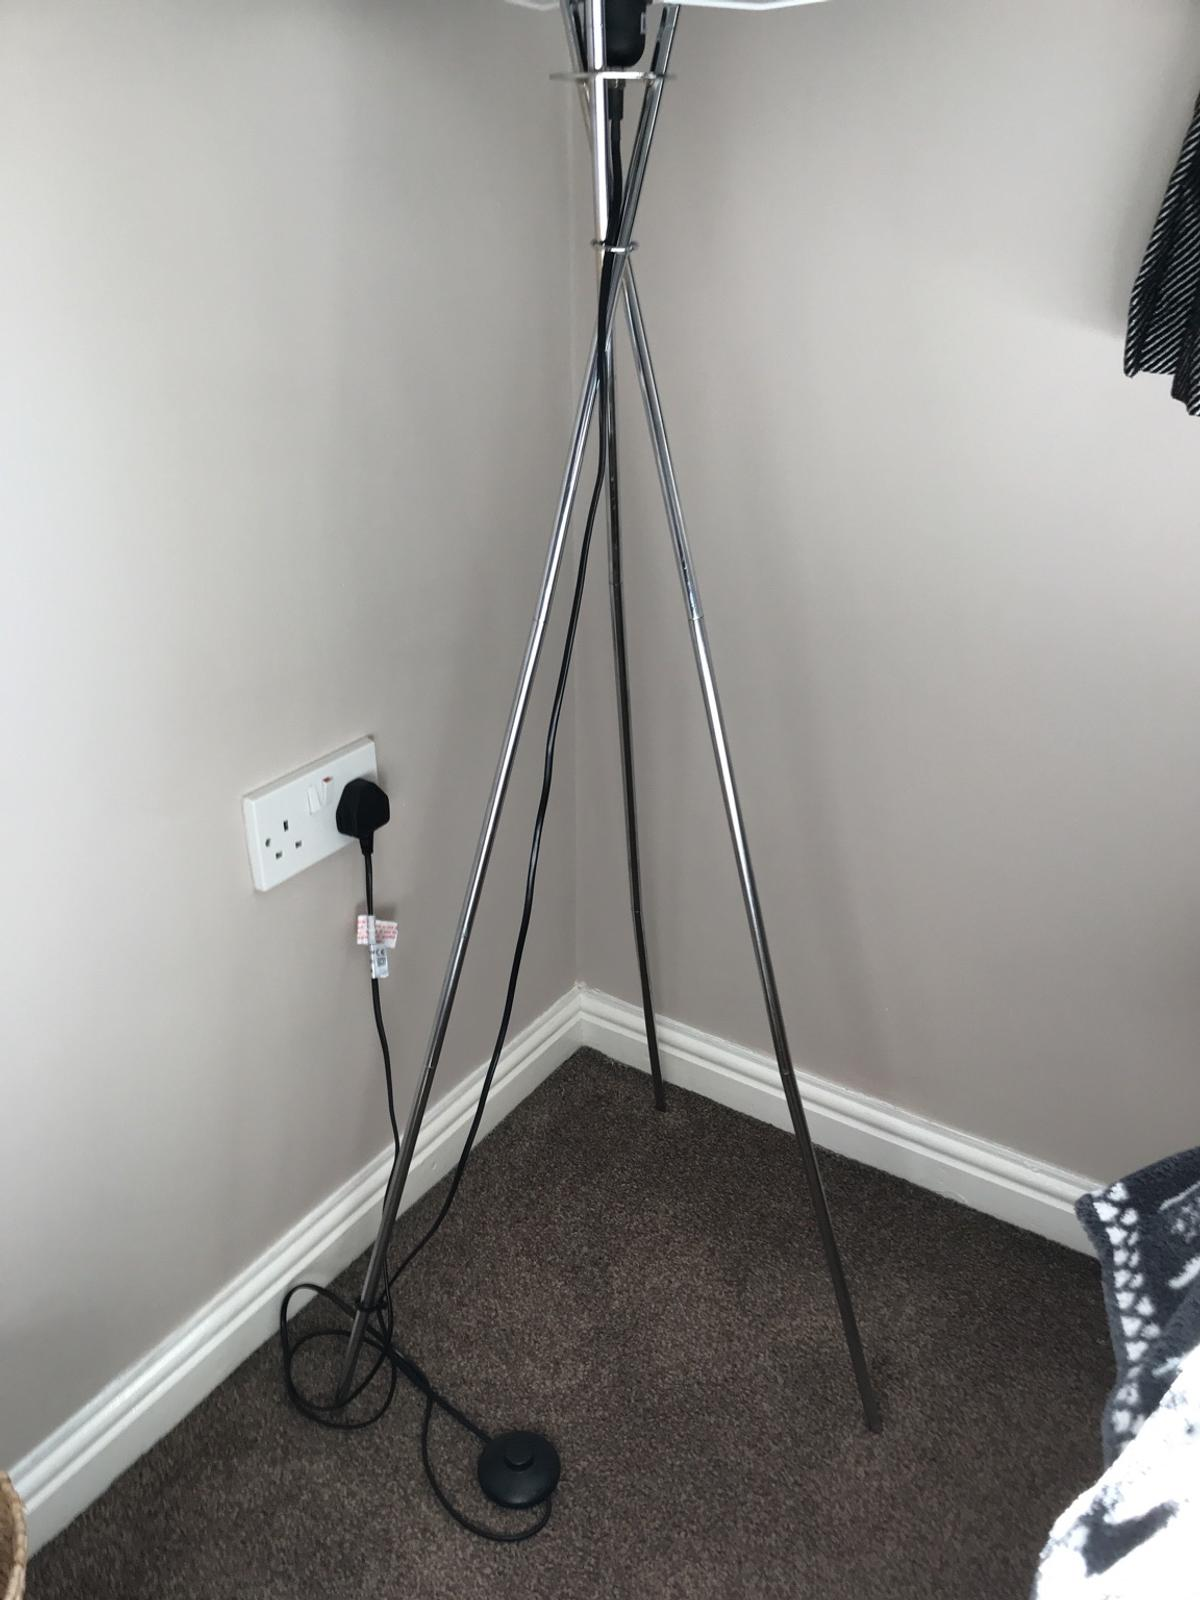 Black velvet circular shade with Crome affect tripod legs. Click switch and long cable. Nearly new, hardly used but due to moving and down sizing I need to get rid of it